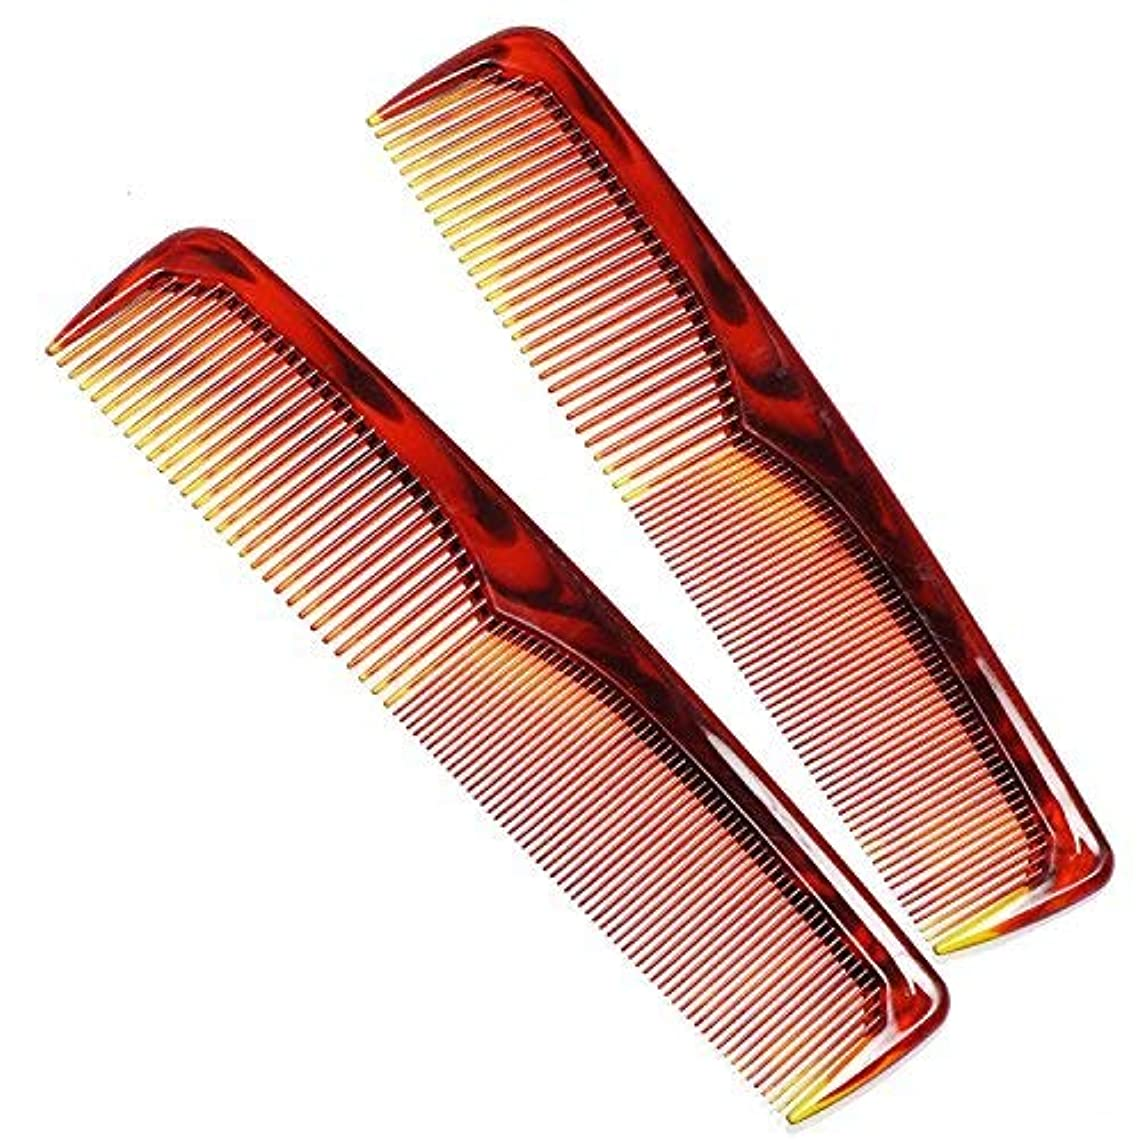 リンク哀不承認Birch 2 Pack Coarse/Fine Combo Hair Comb. 9 X 1.5 Inches [並行輸入品]